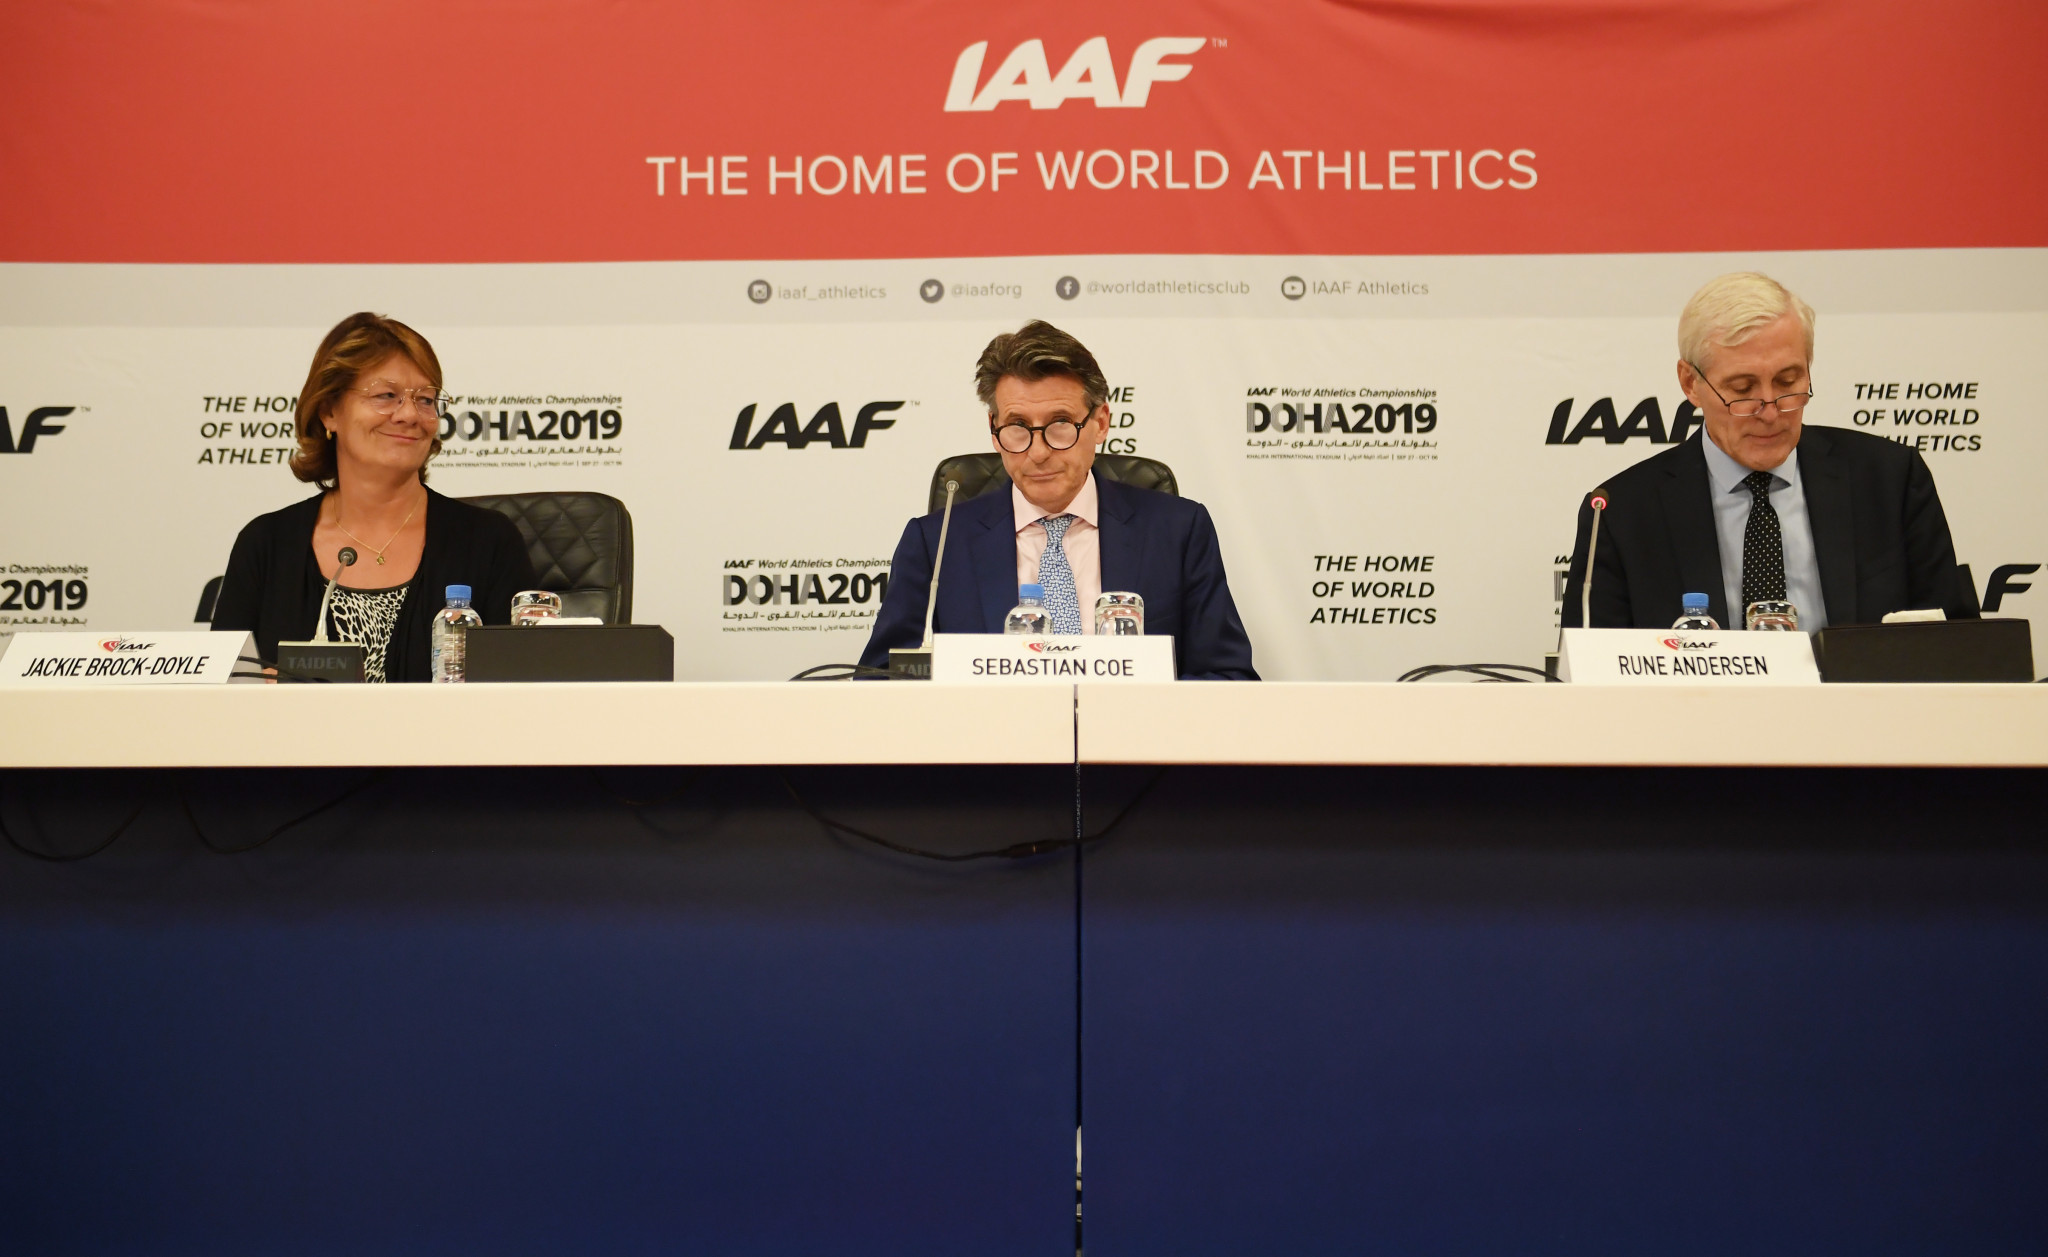 Russian athletes to compete as neutrals at IAAF World Championships after suspension extended